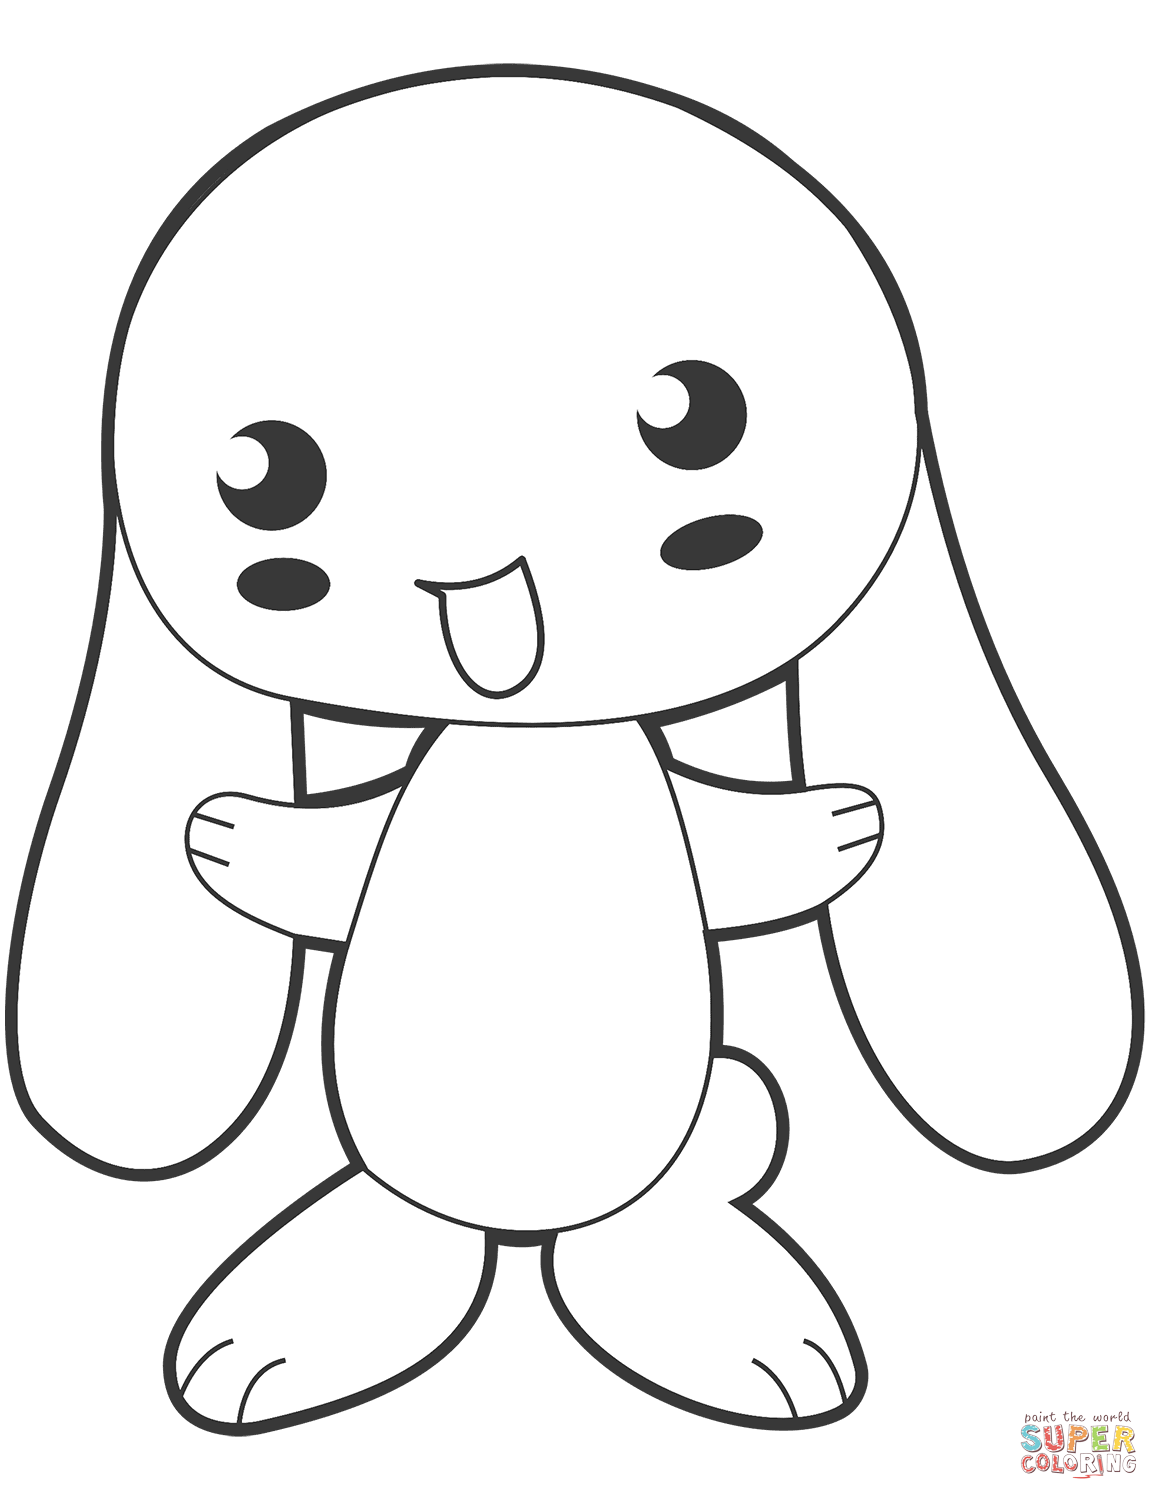 Cute Anime Bunny Coloring Page